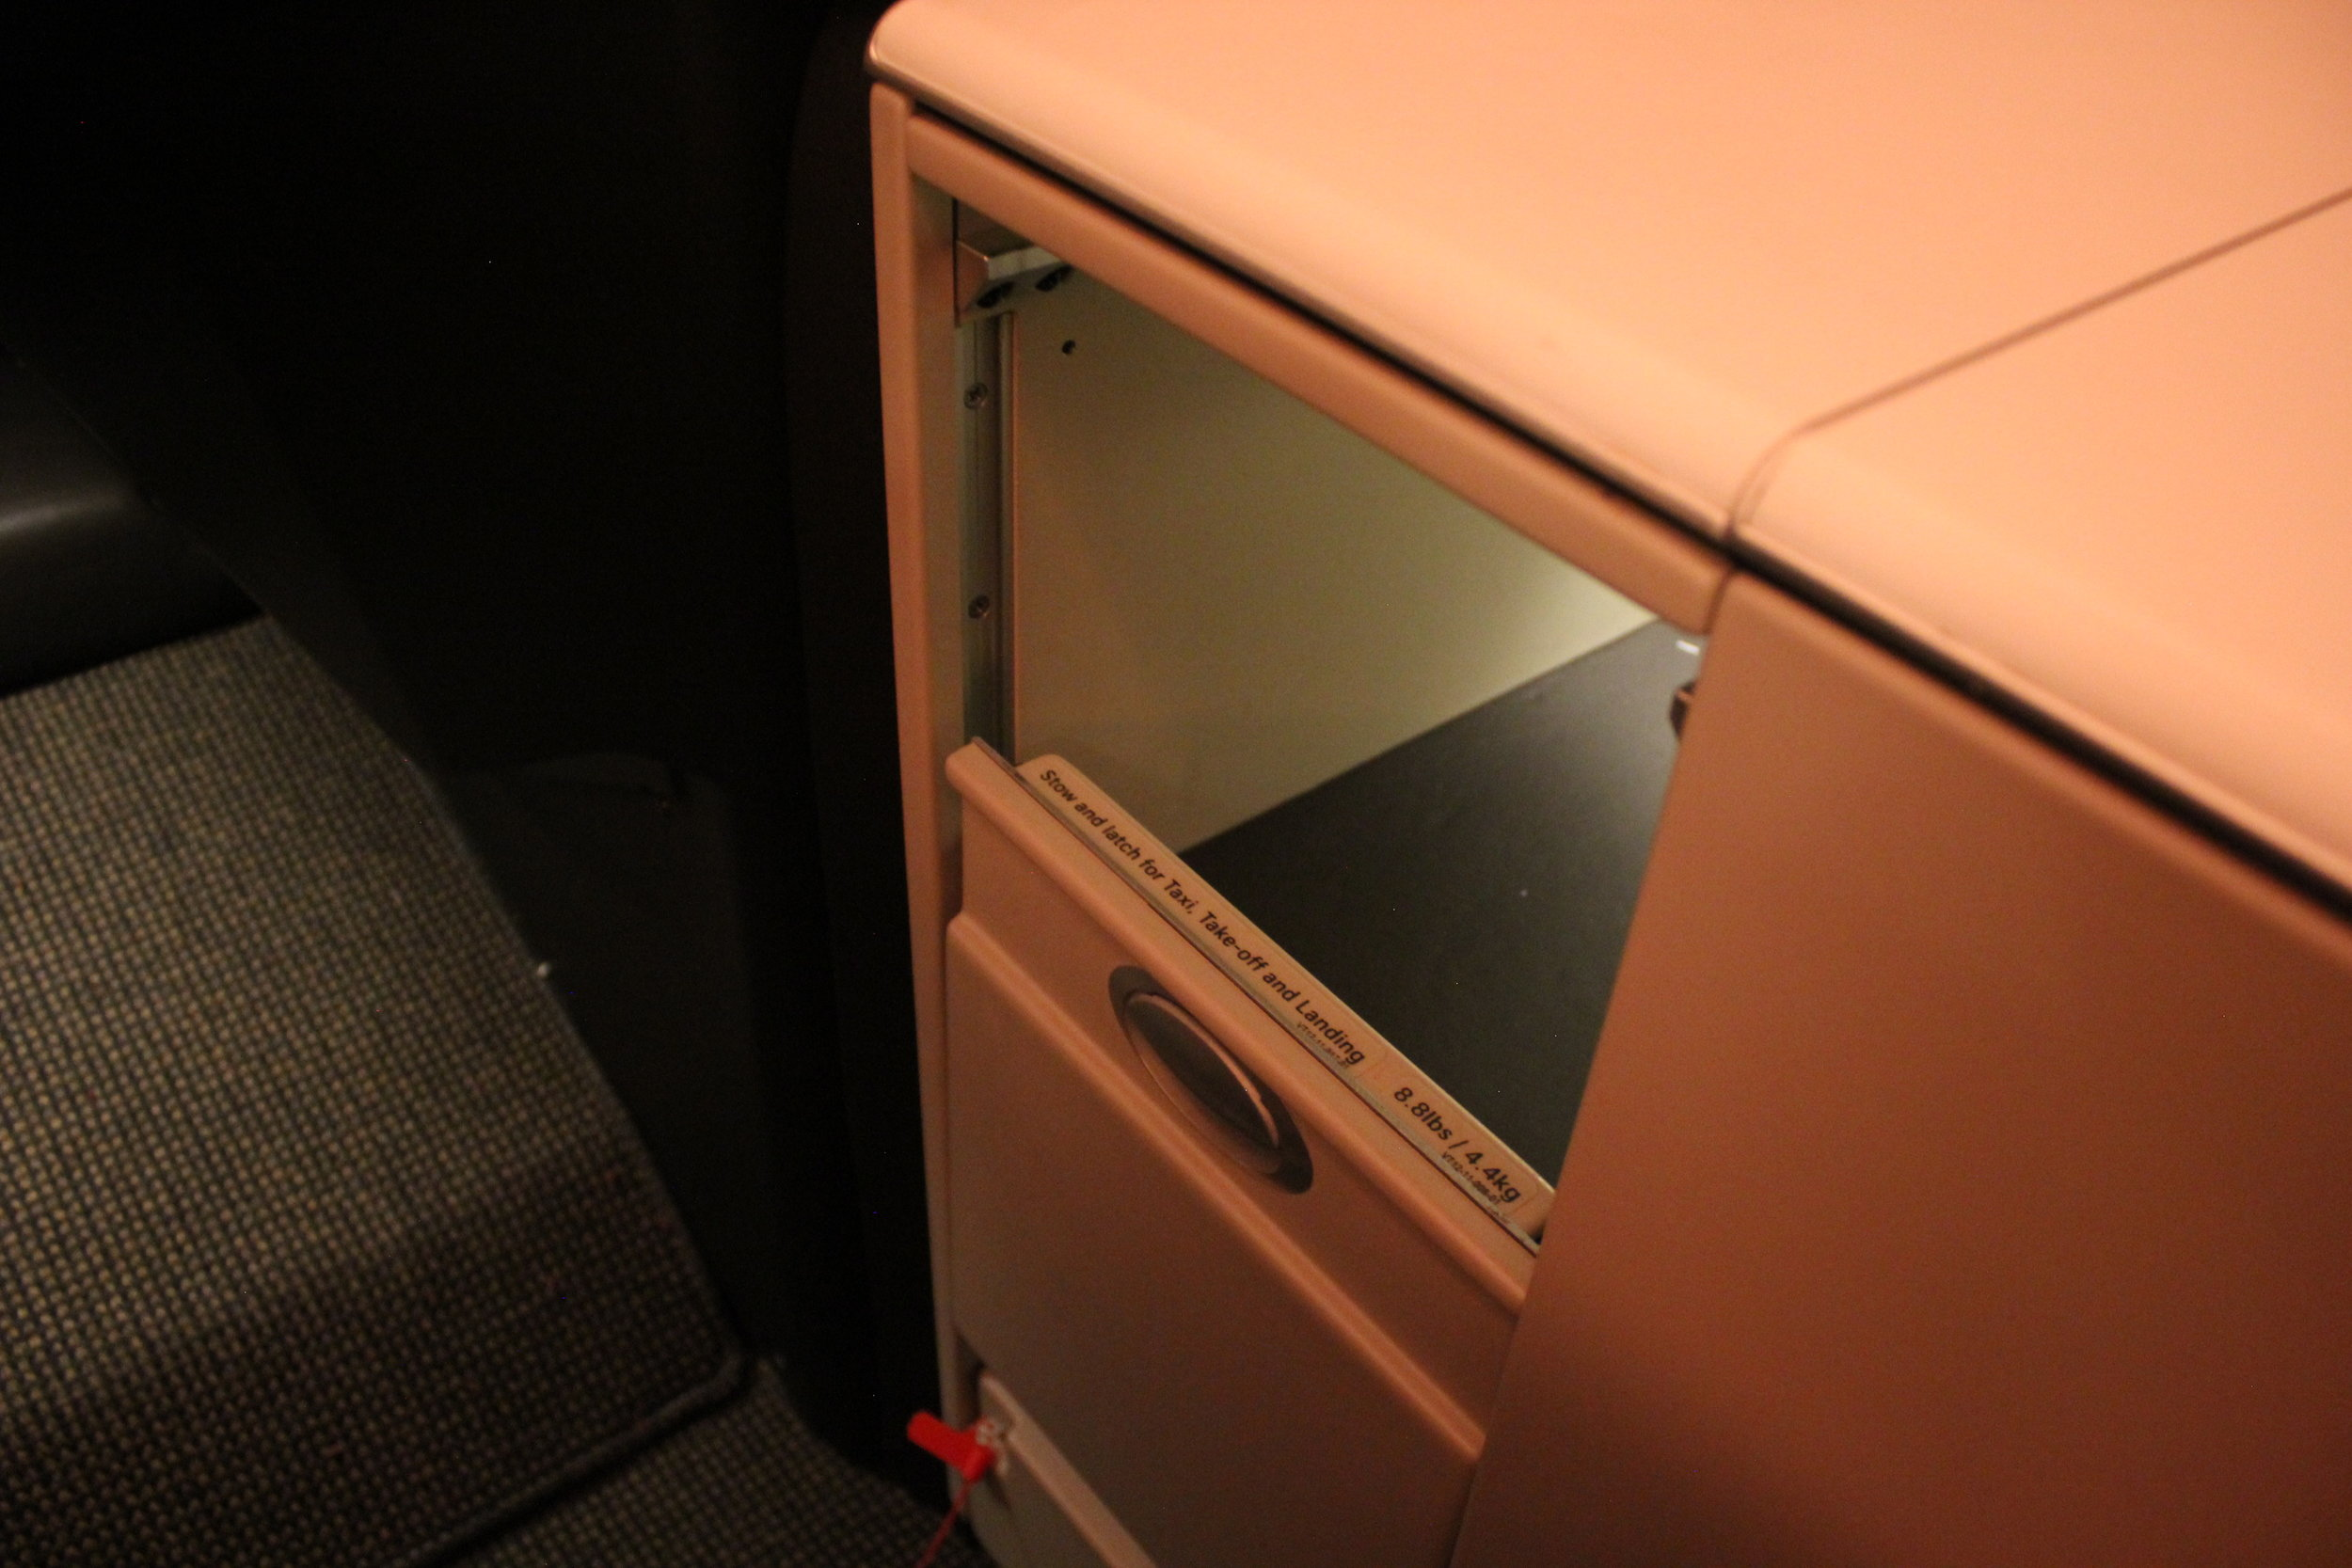 Swiss 777 business class – Storage compartment